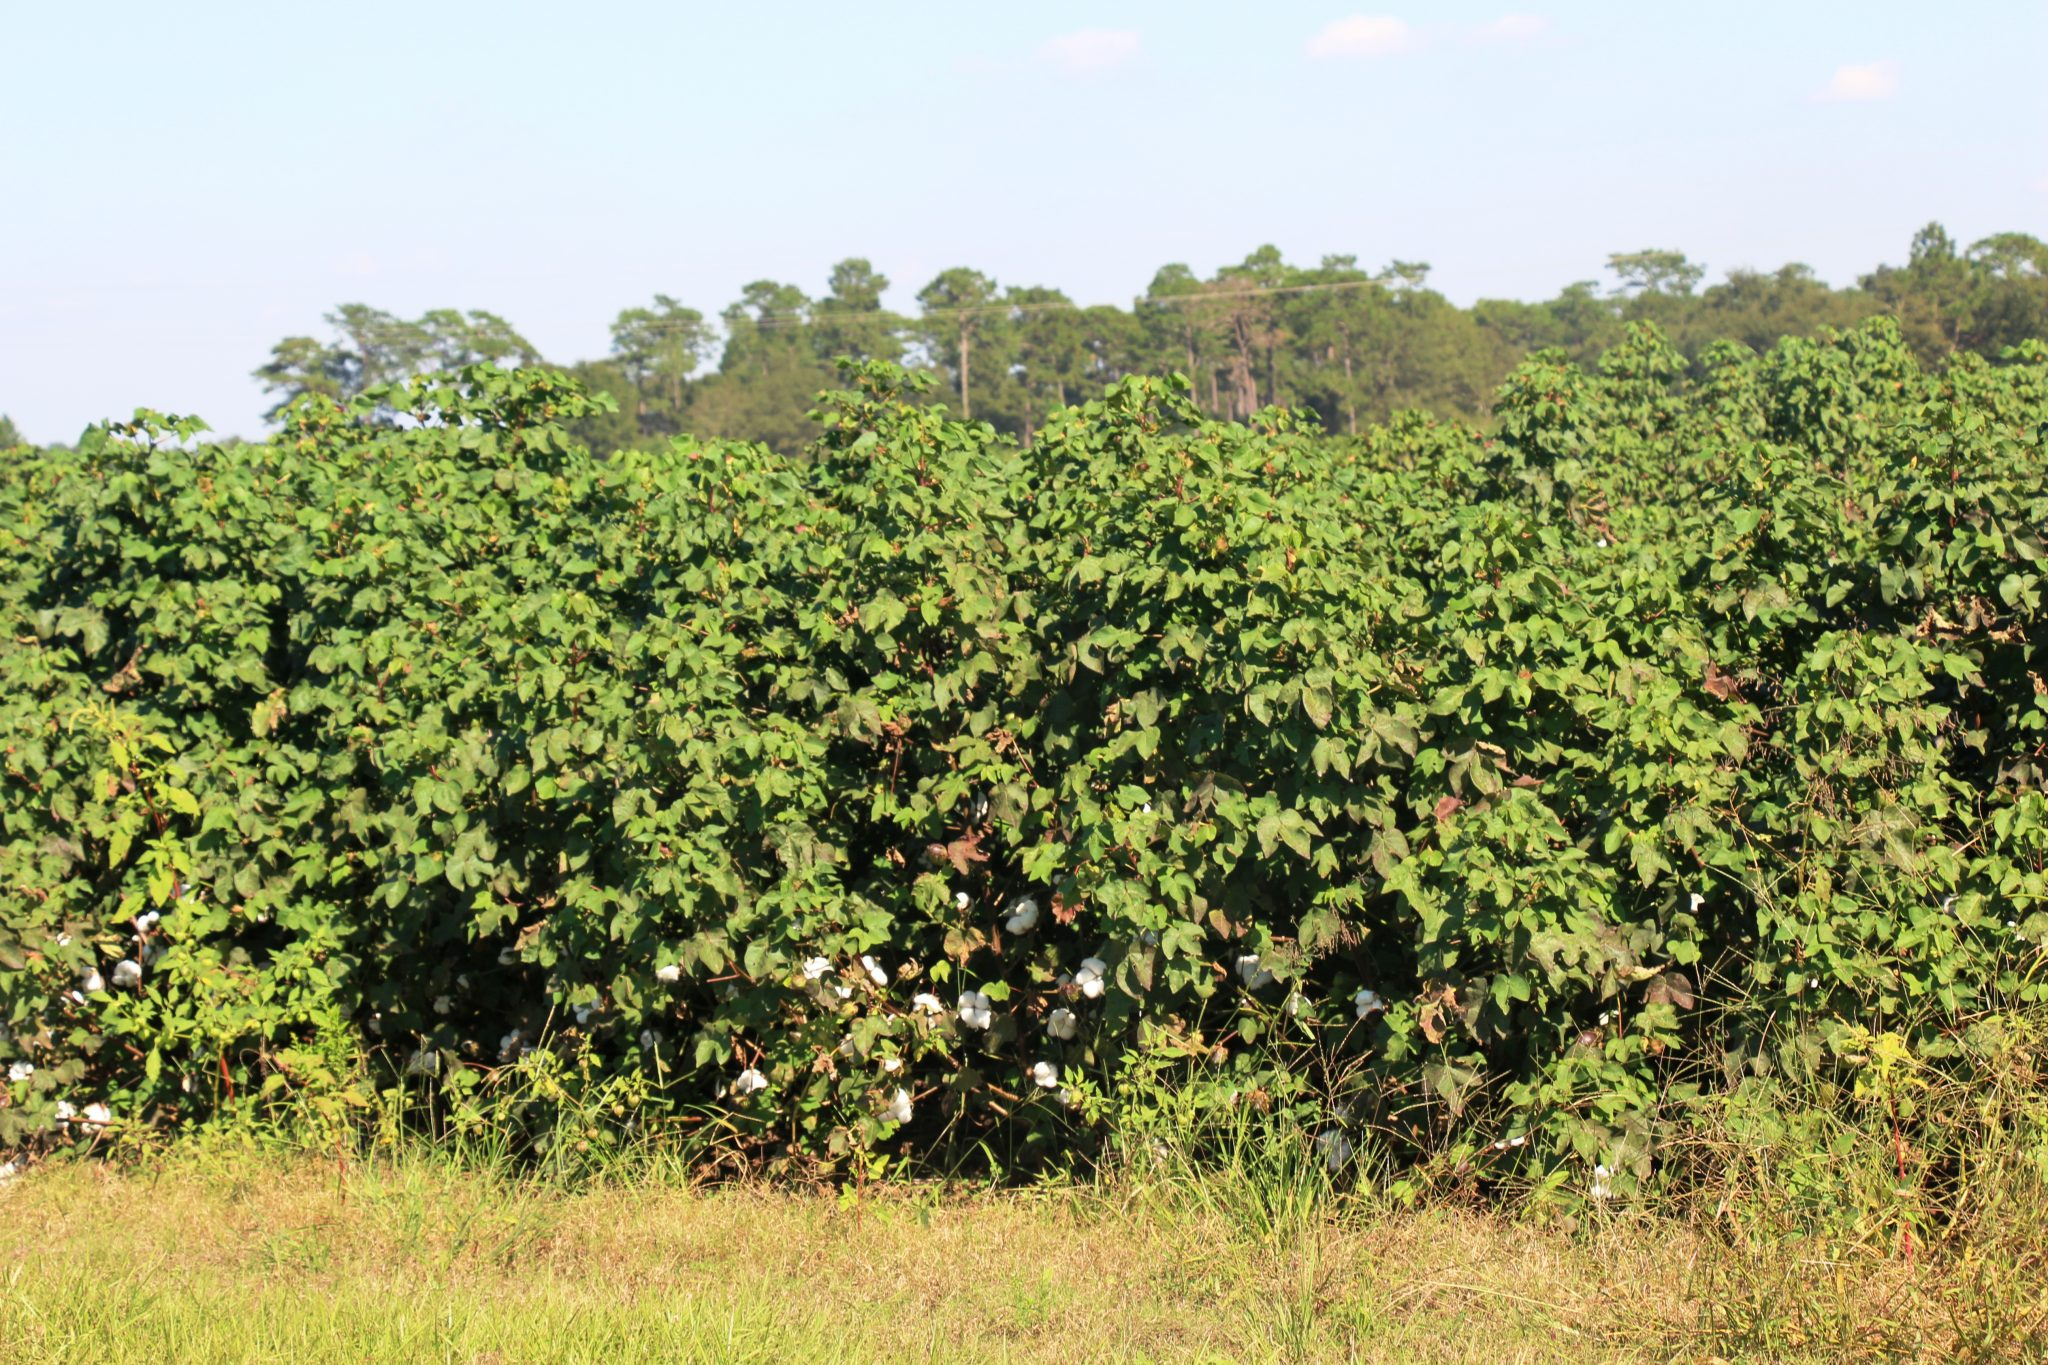 CLRDV-AL diseased cotton exhibiting the Christmas tree or pyramidal shape with elongated terminal shoots (accentuated verticality) with a dense leaf canopy. Notice the absence of blooms and open bolls in the upper canopy.